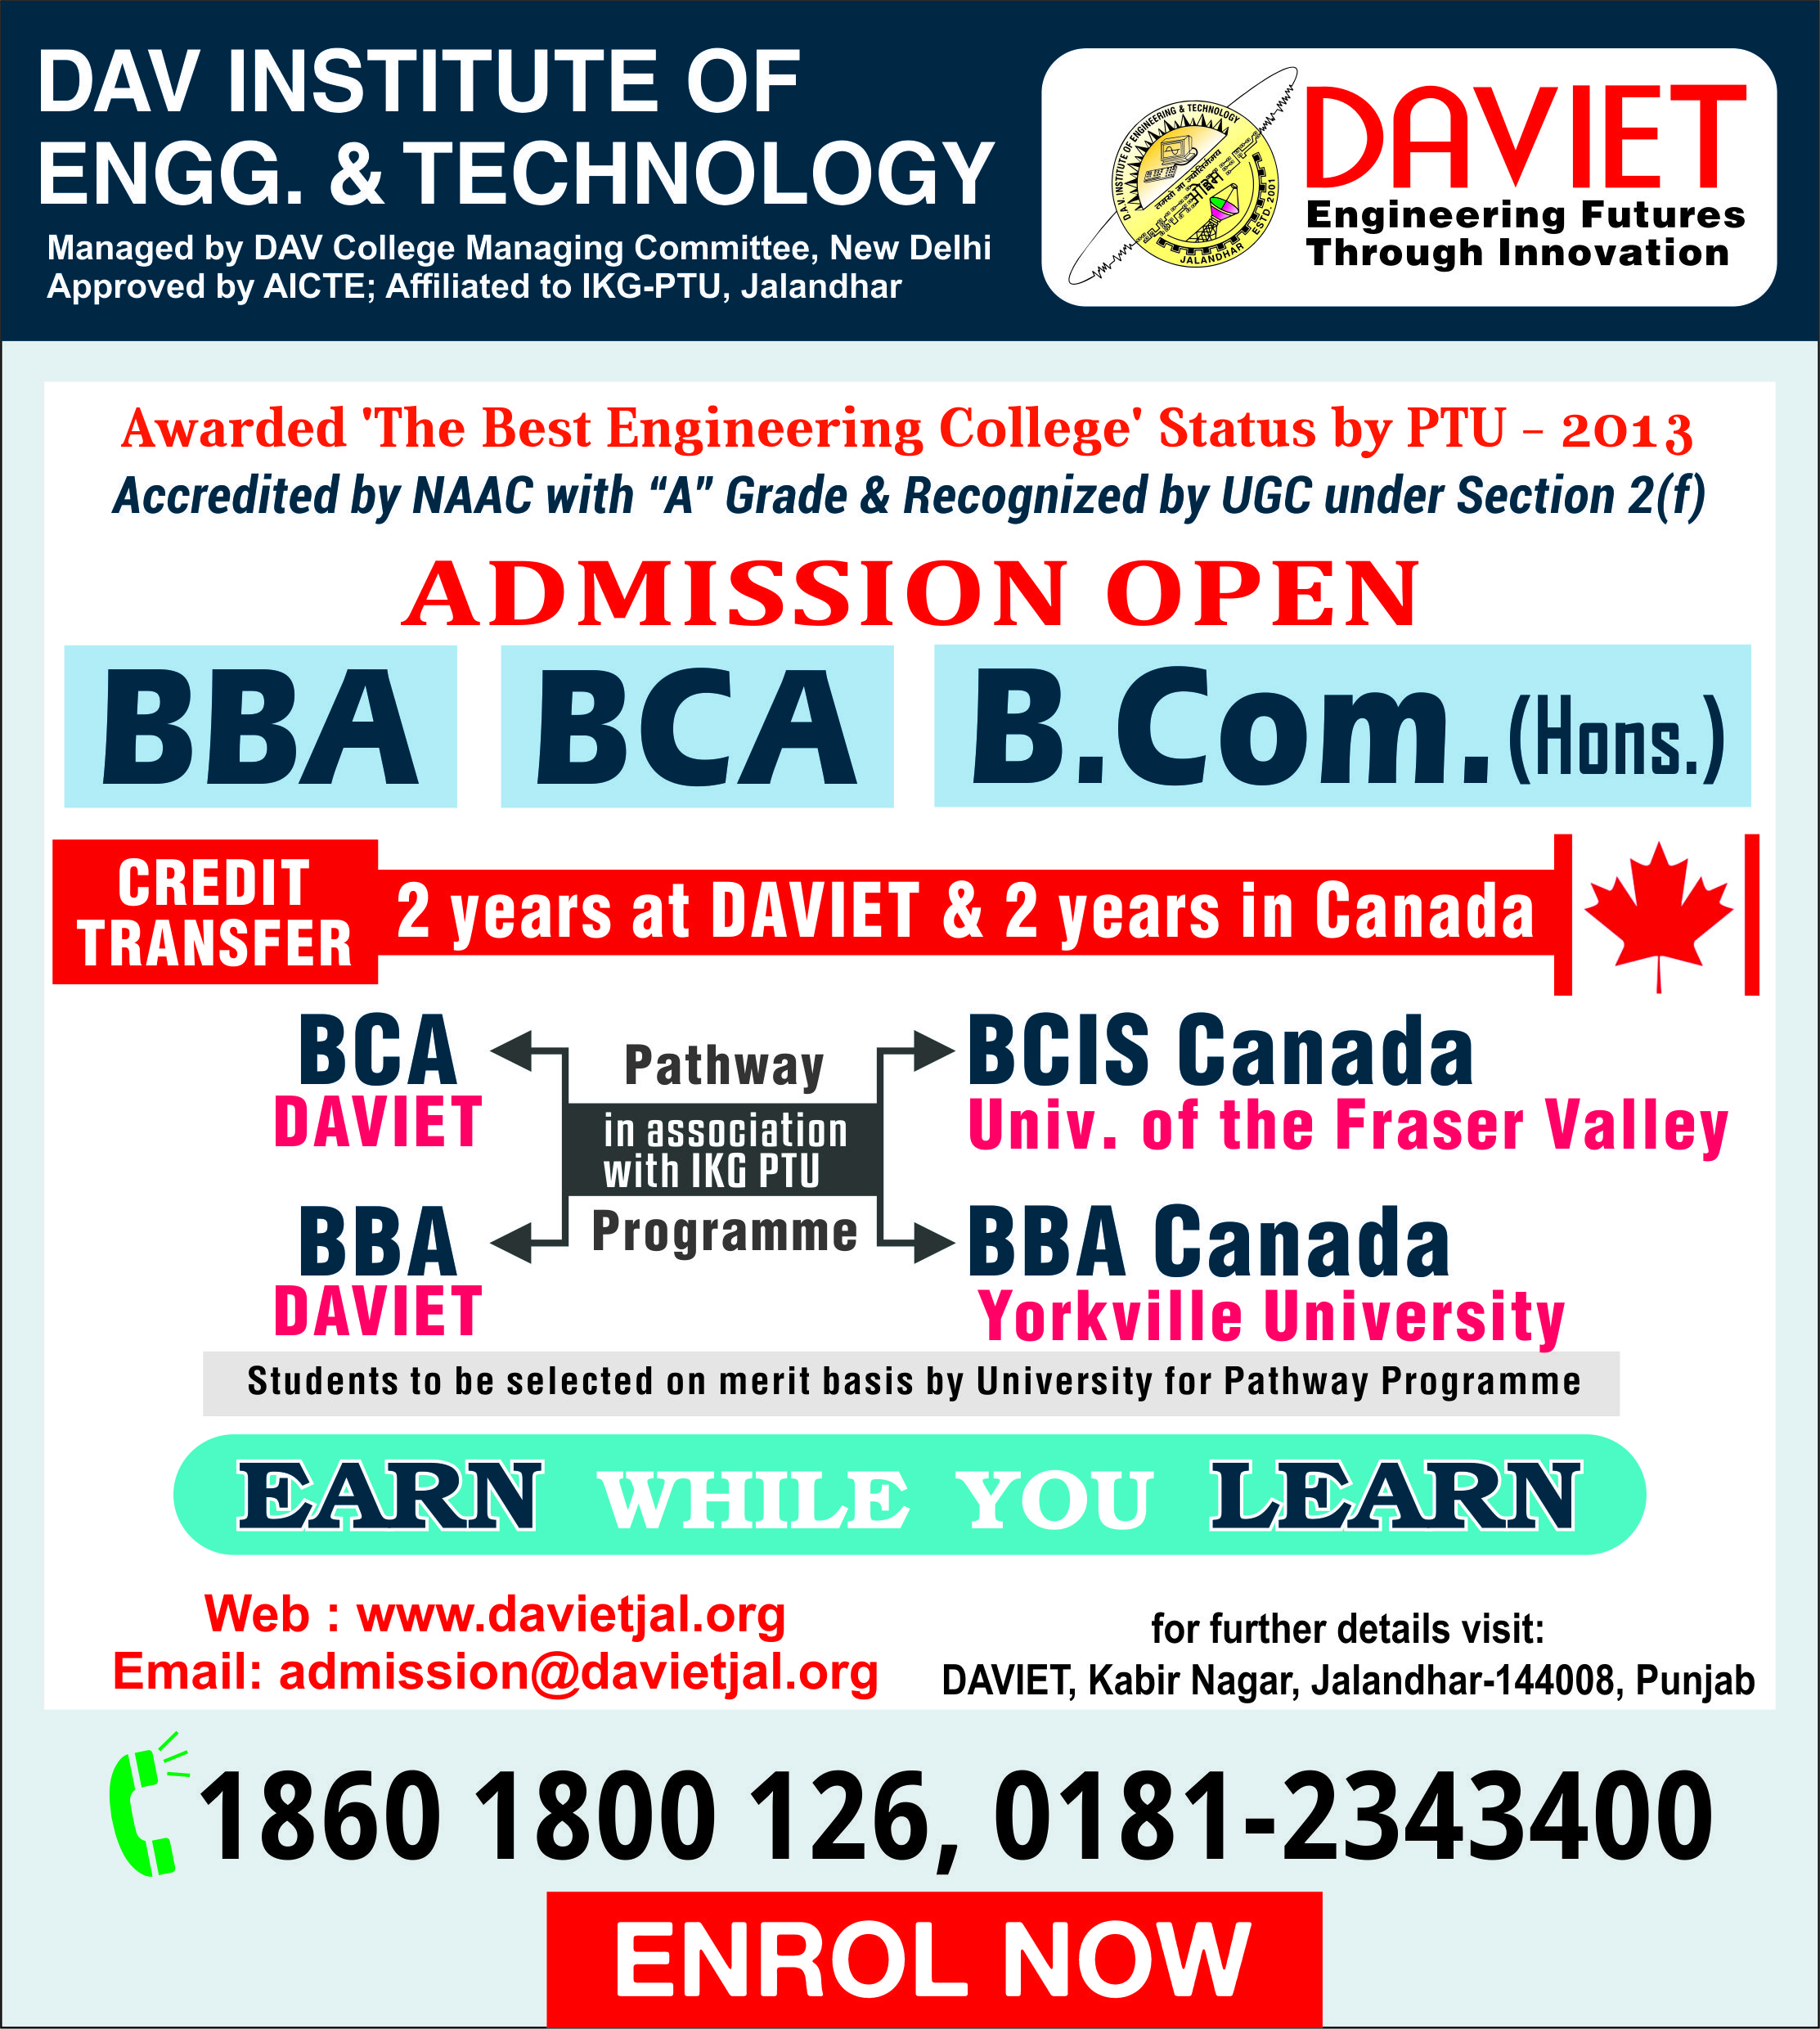 Enrol-now-bba-bca-bcom-1